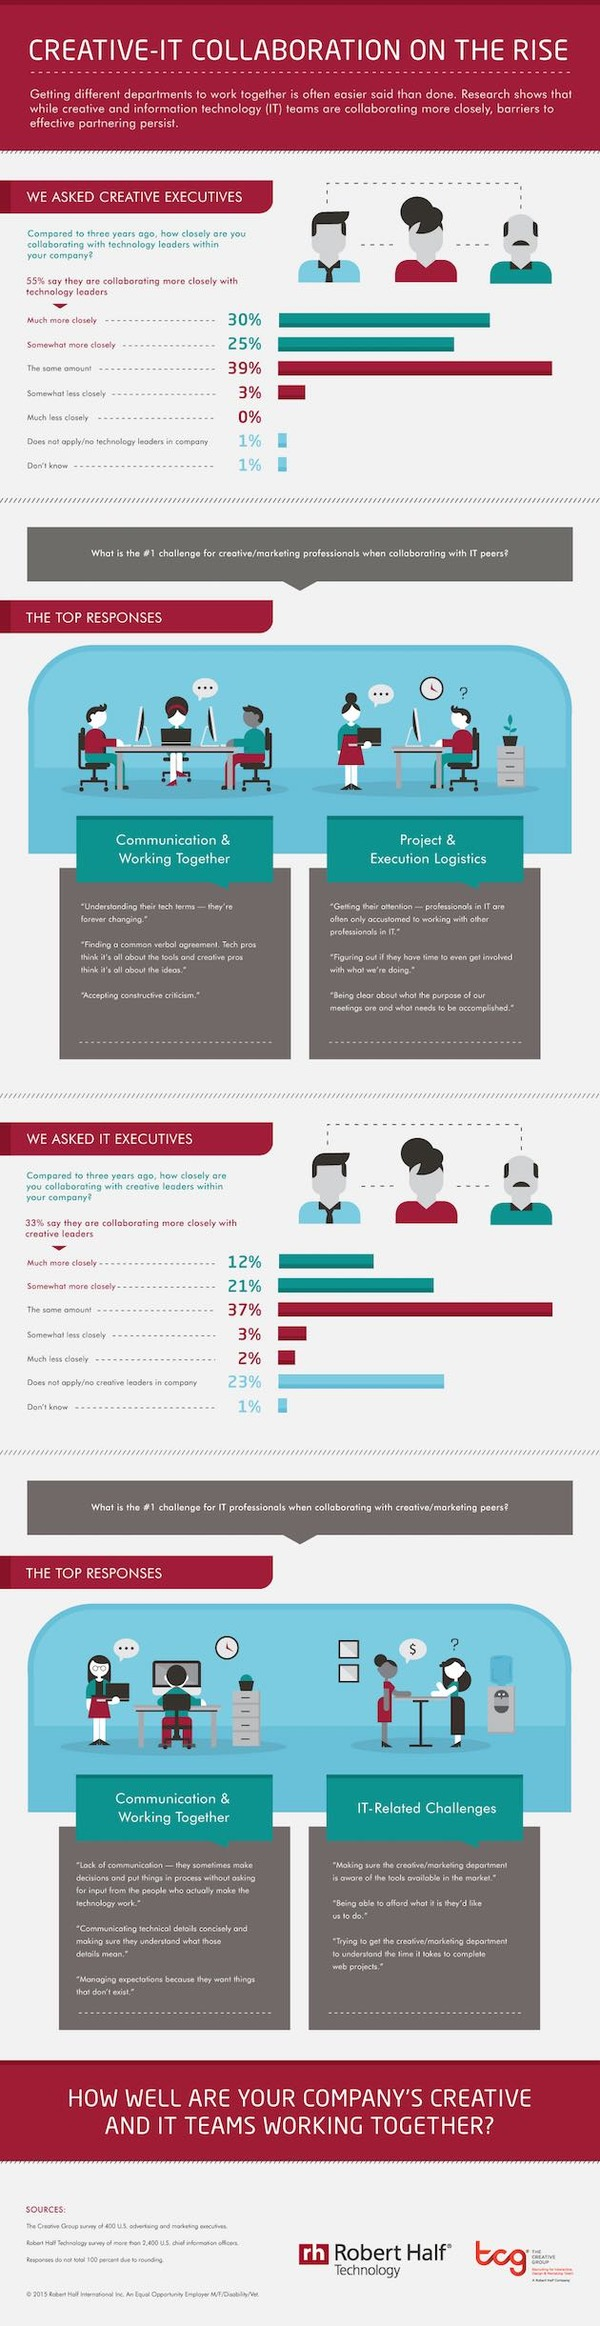 Marketing and IT Execs Collaborating More [Infographic] - Profs | The Marketing Technology Alert | Scoop.it